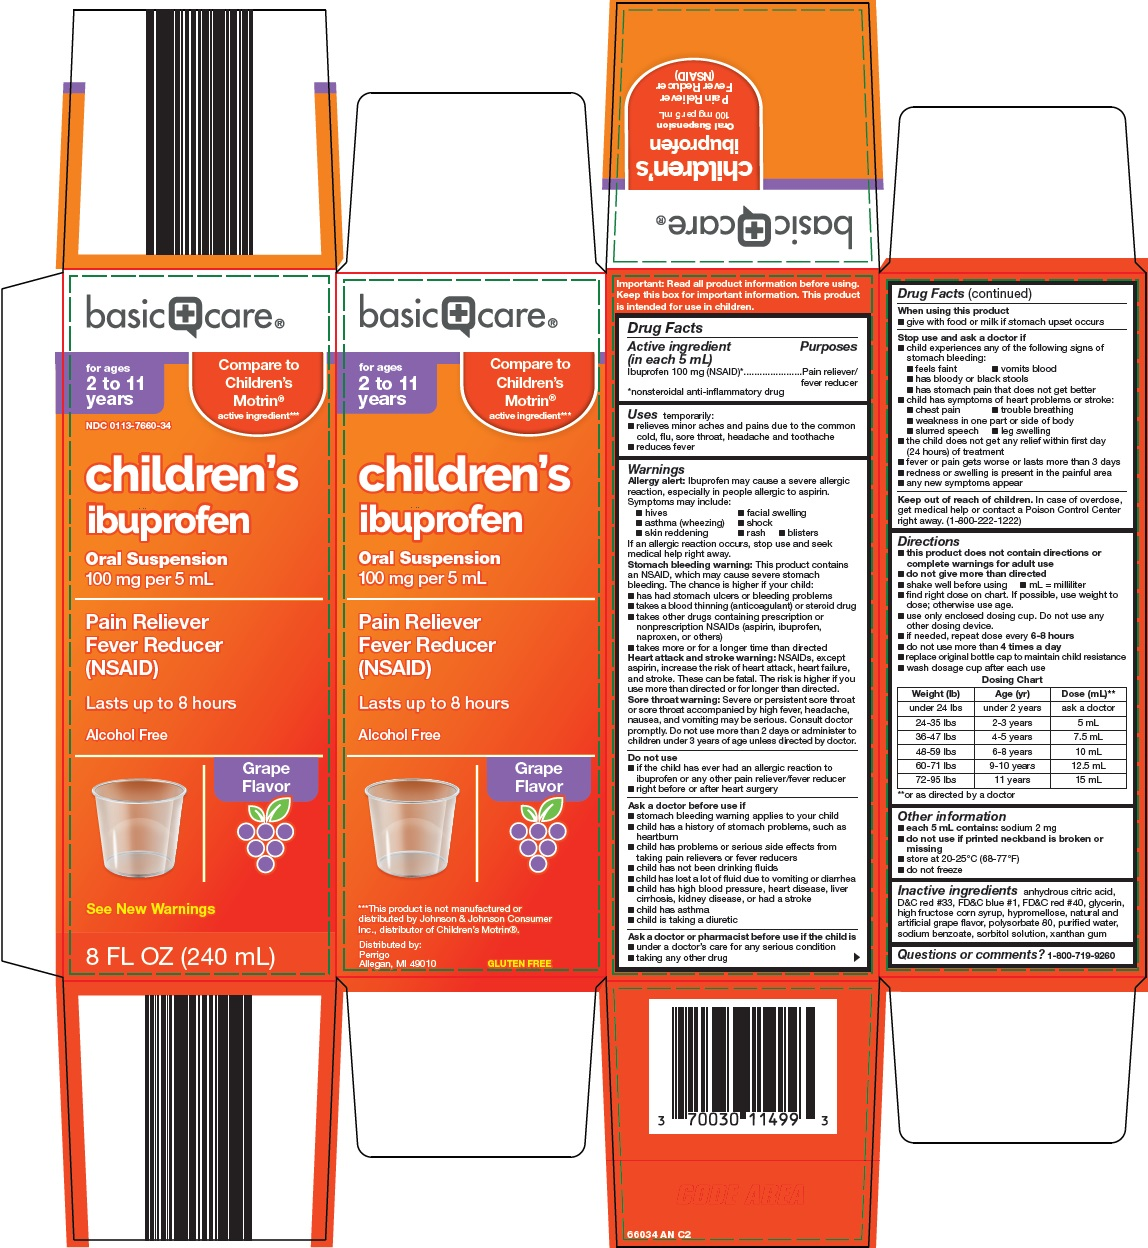 660-an-childrens-ibuprofen.jpg